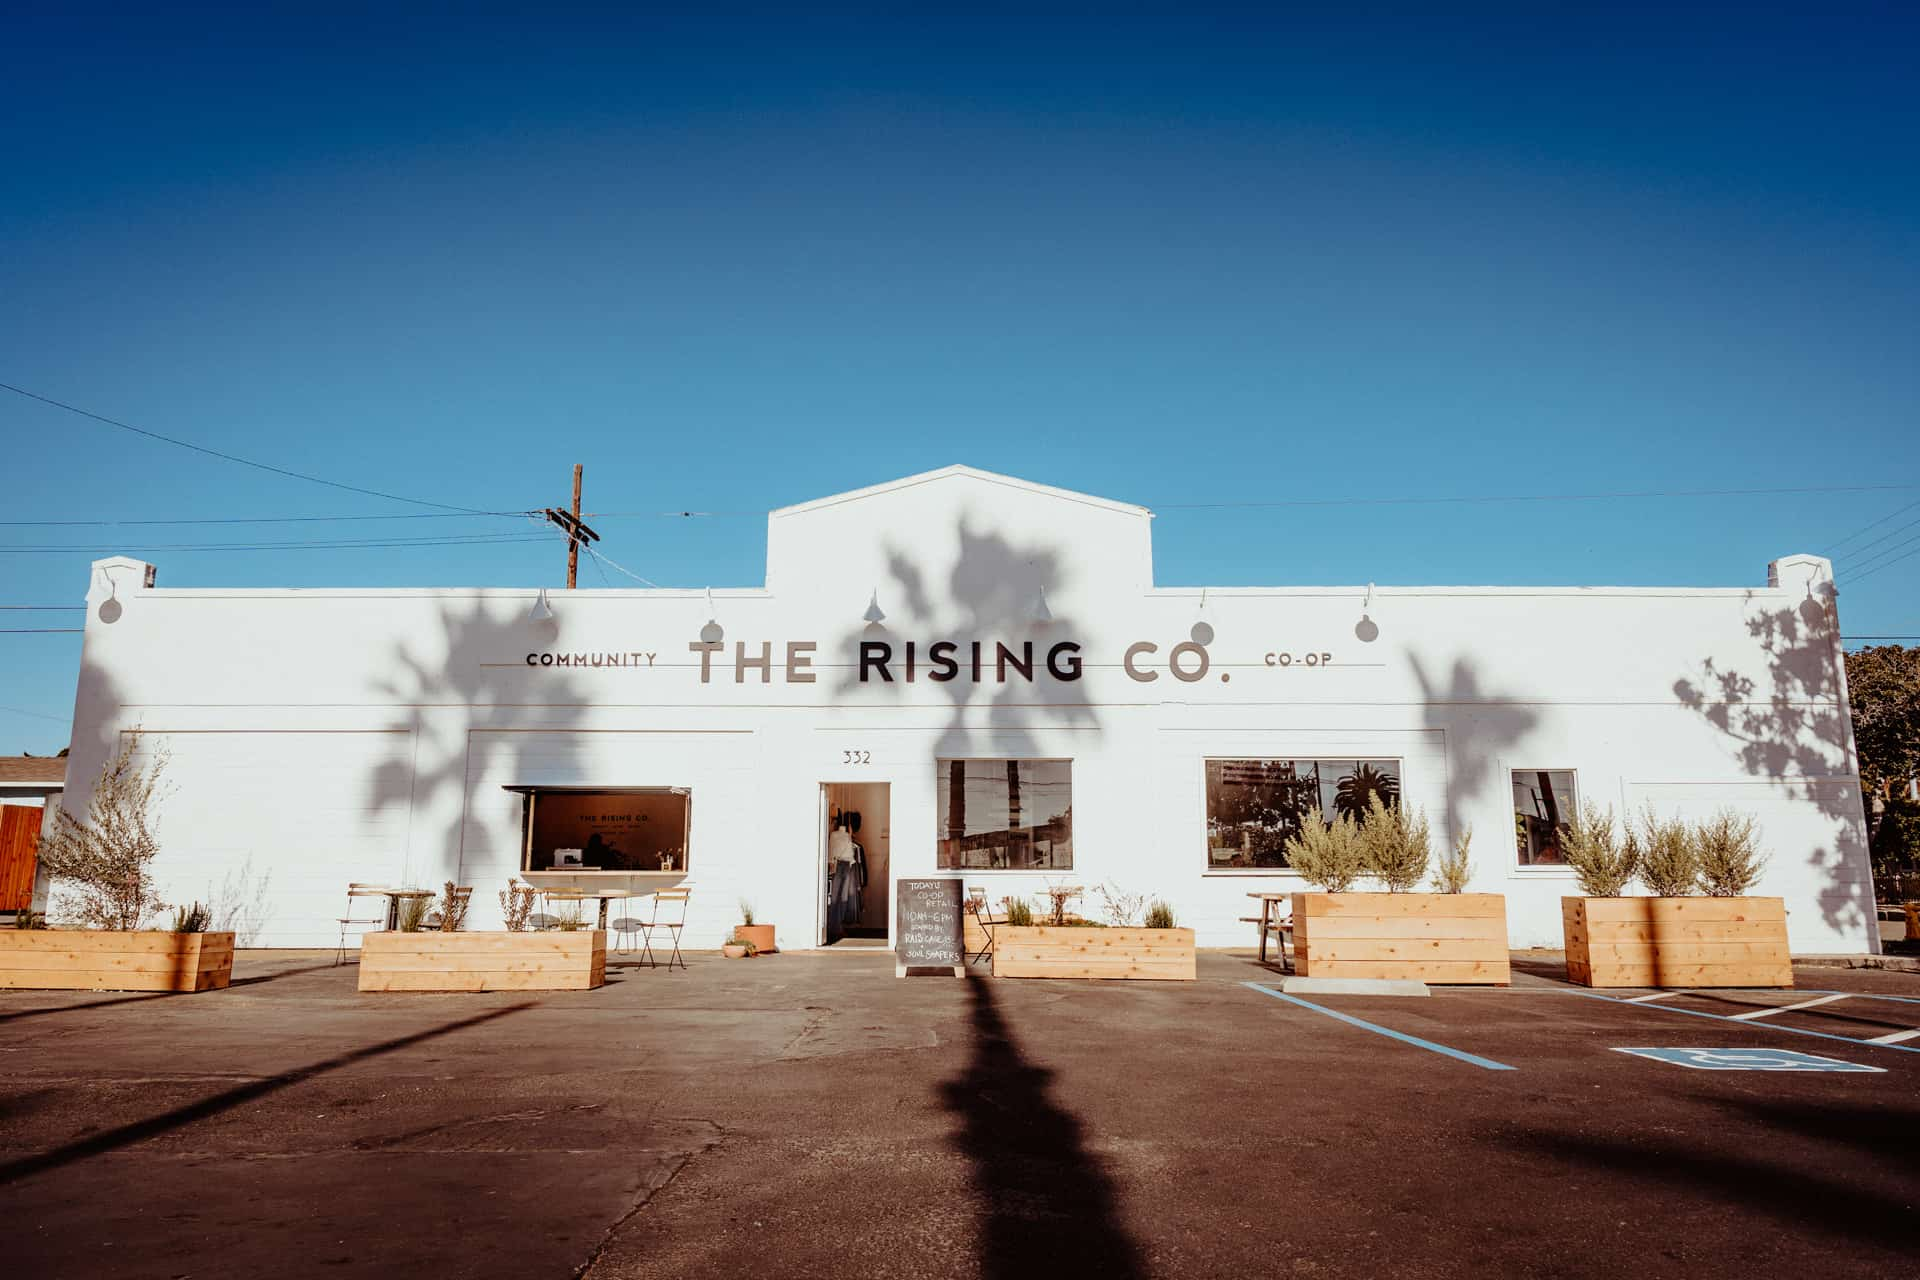 The Rising Co.